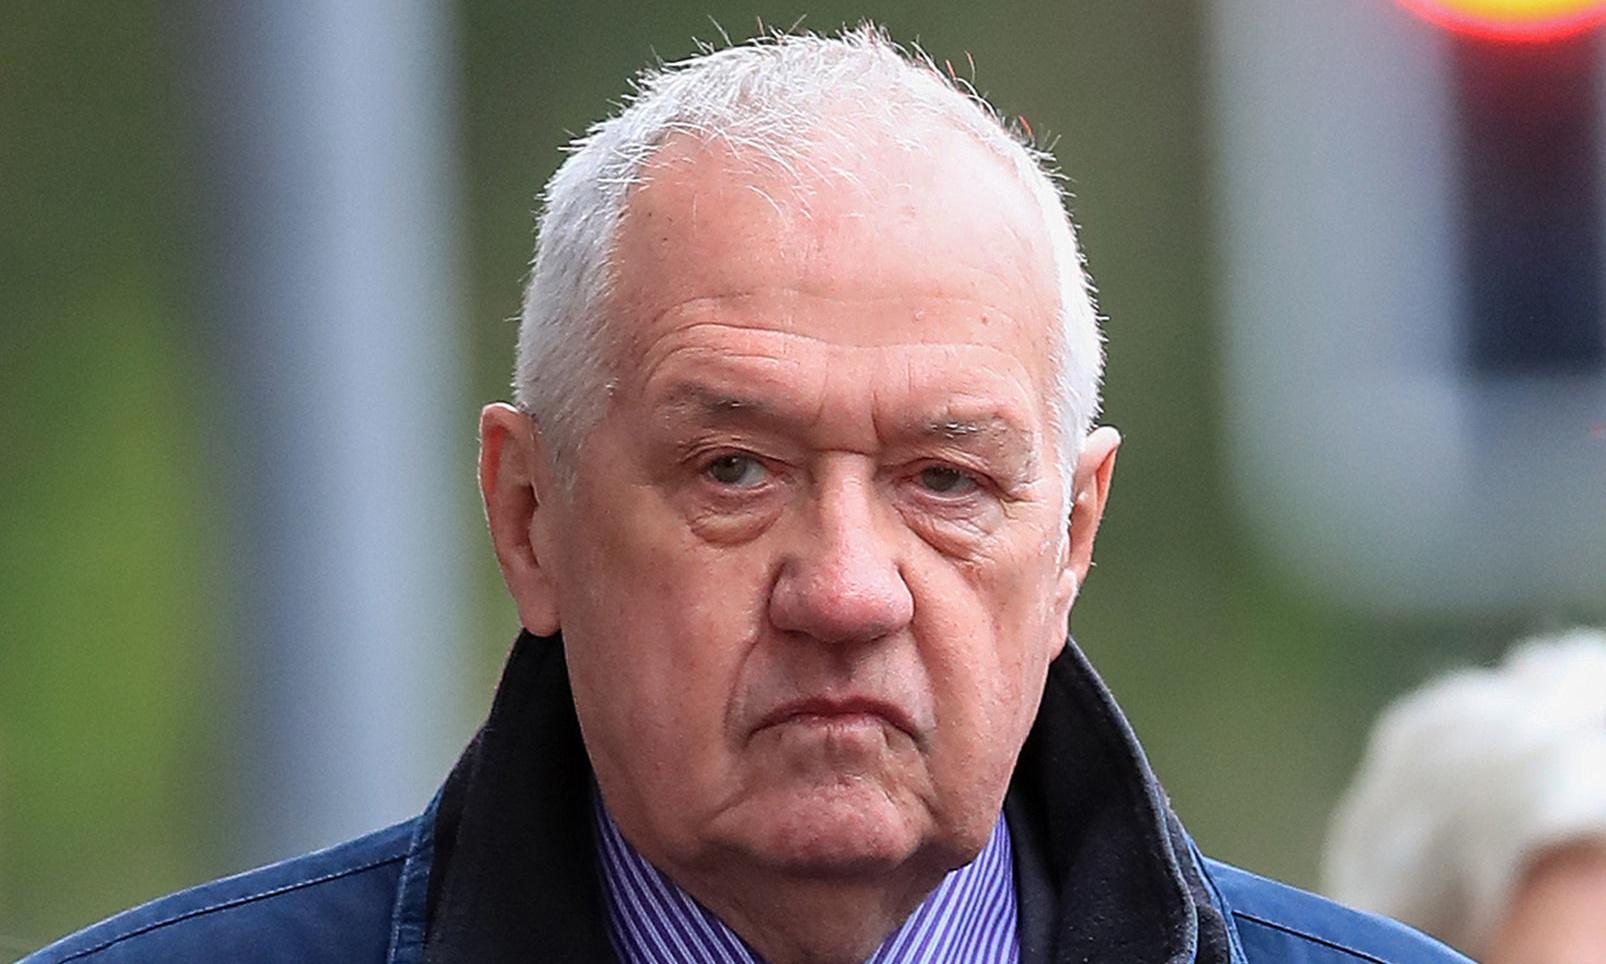 Duckenfield has admitted lying about Hillsborough, jury told